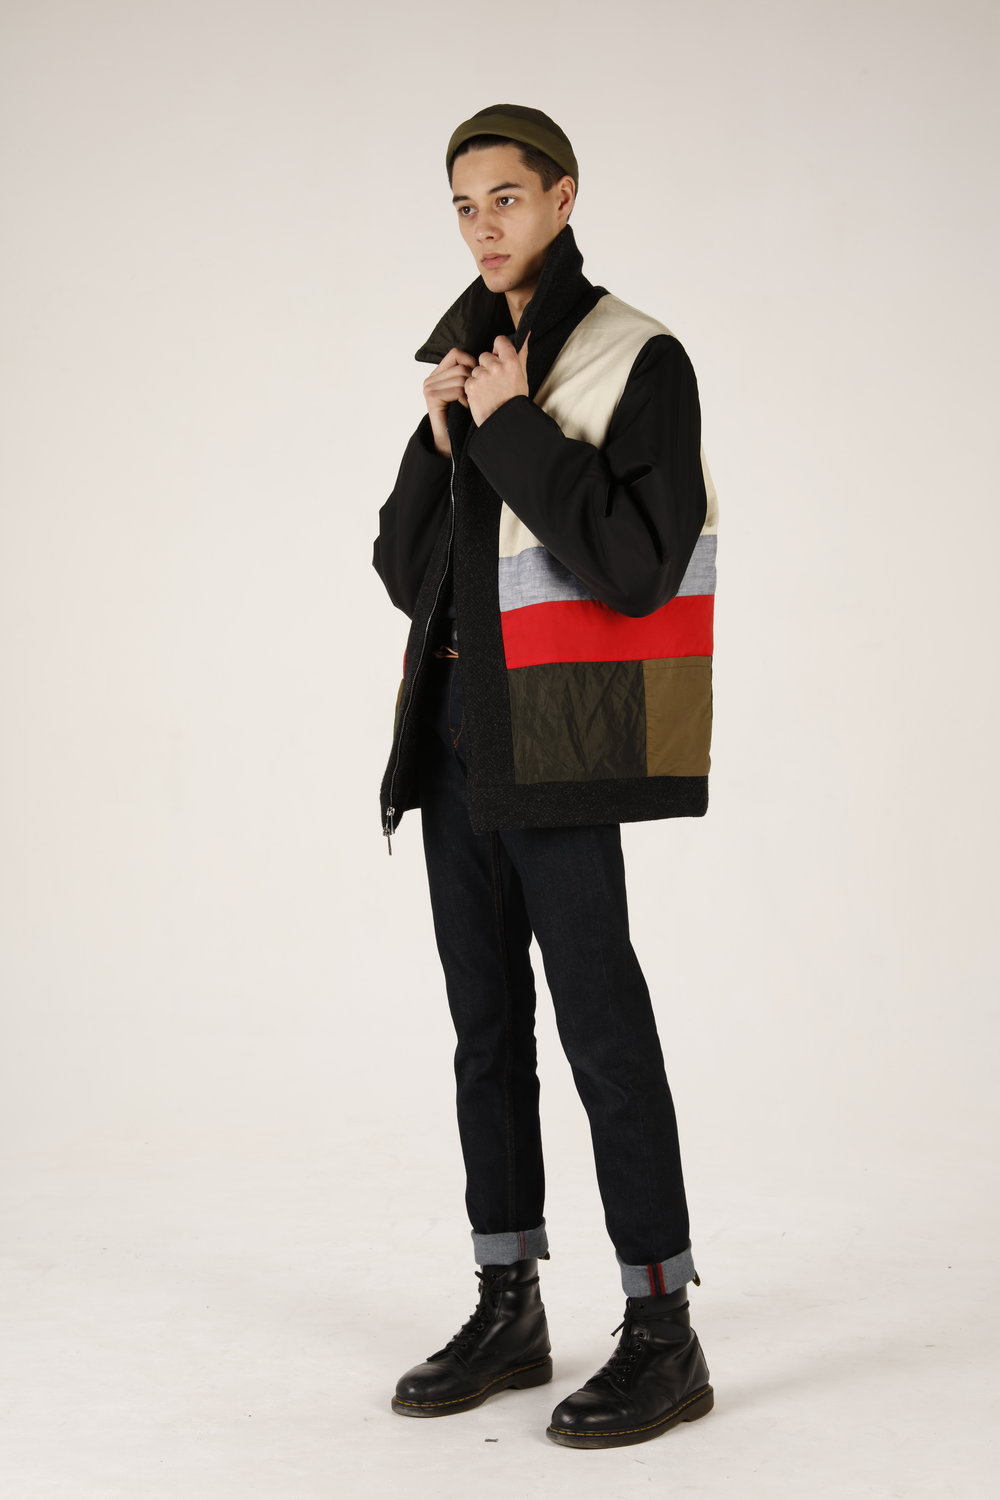 HOMECORE AW180008.JPG